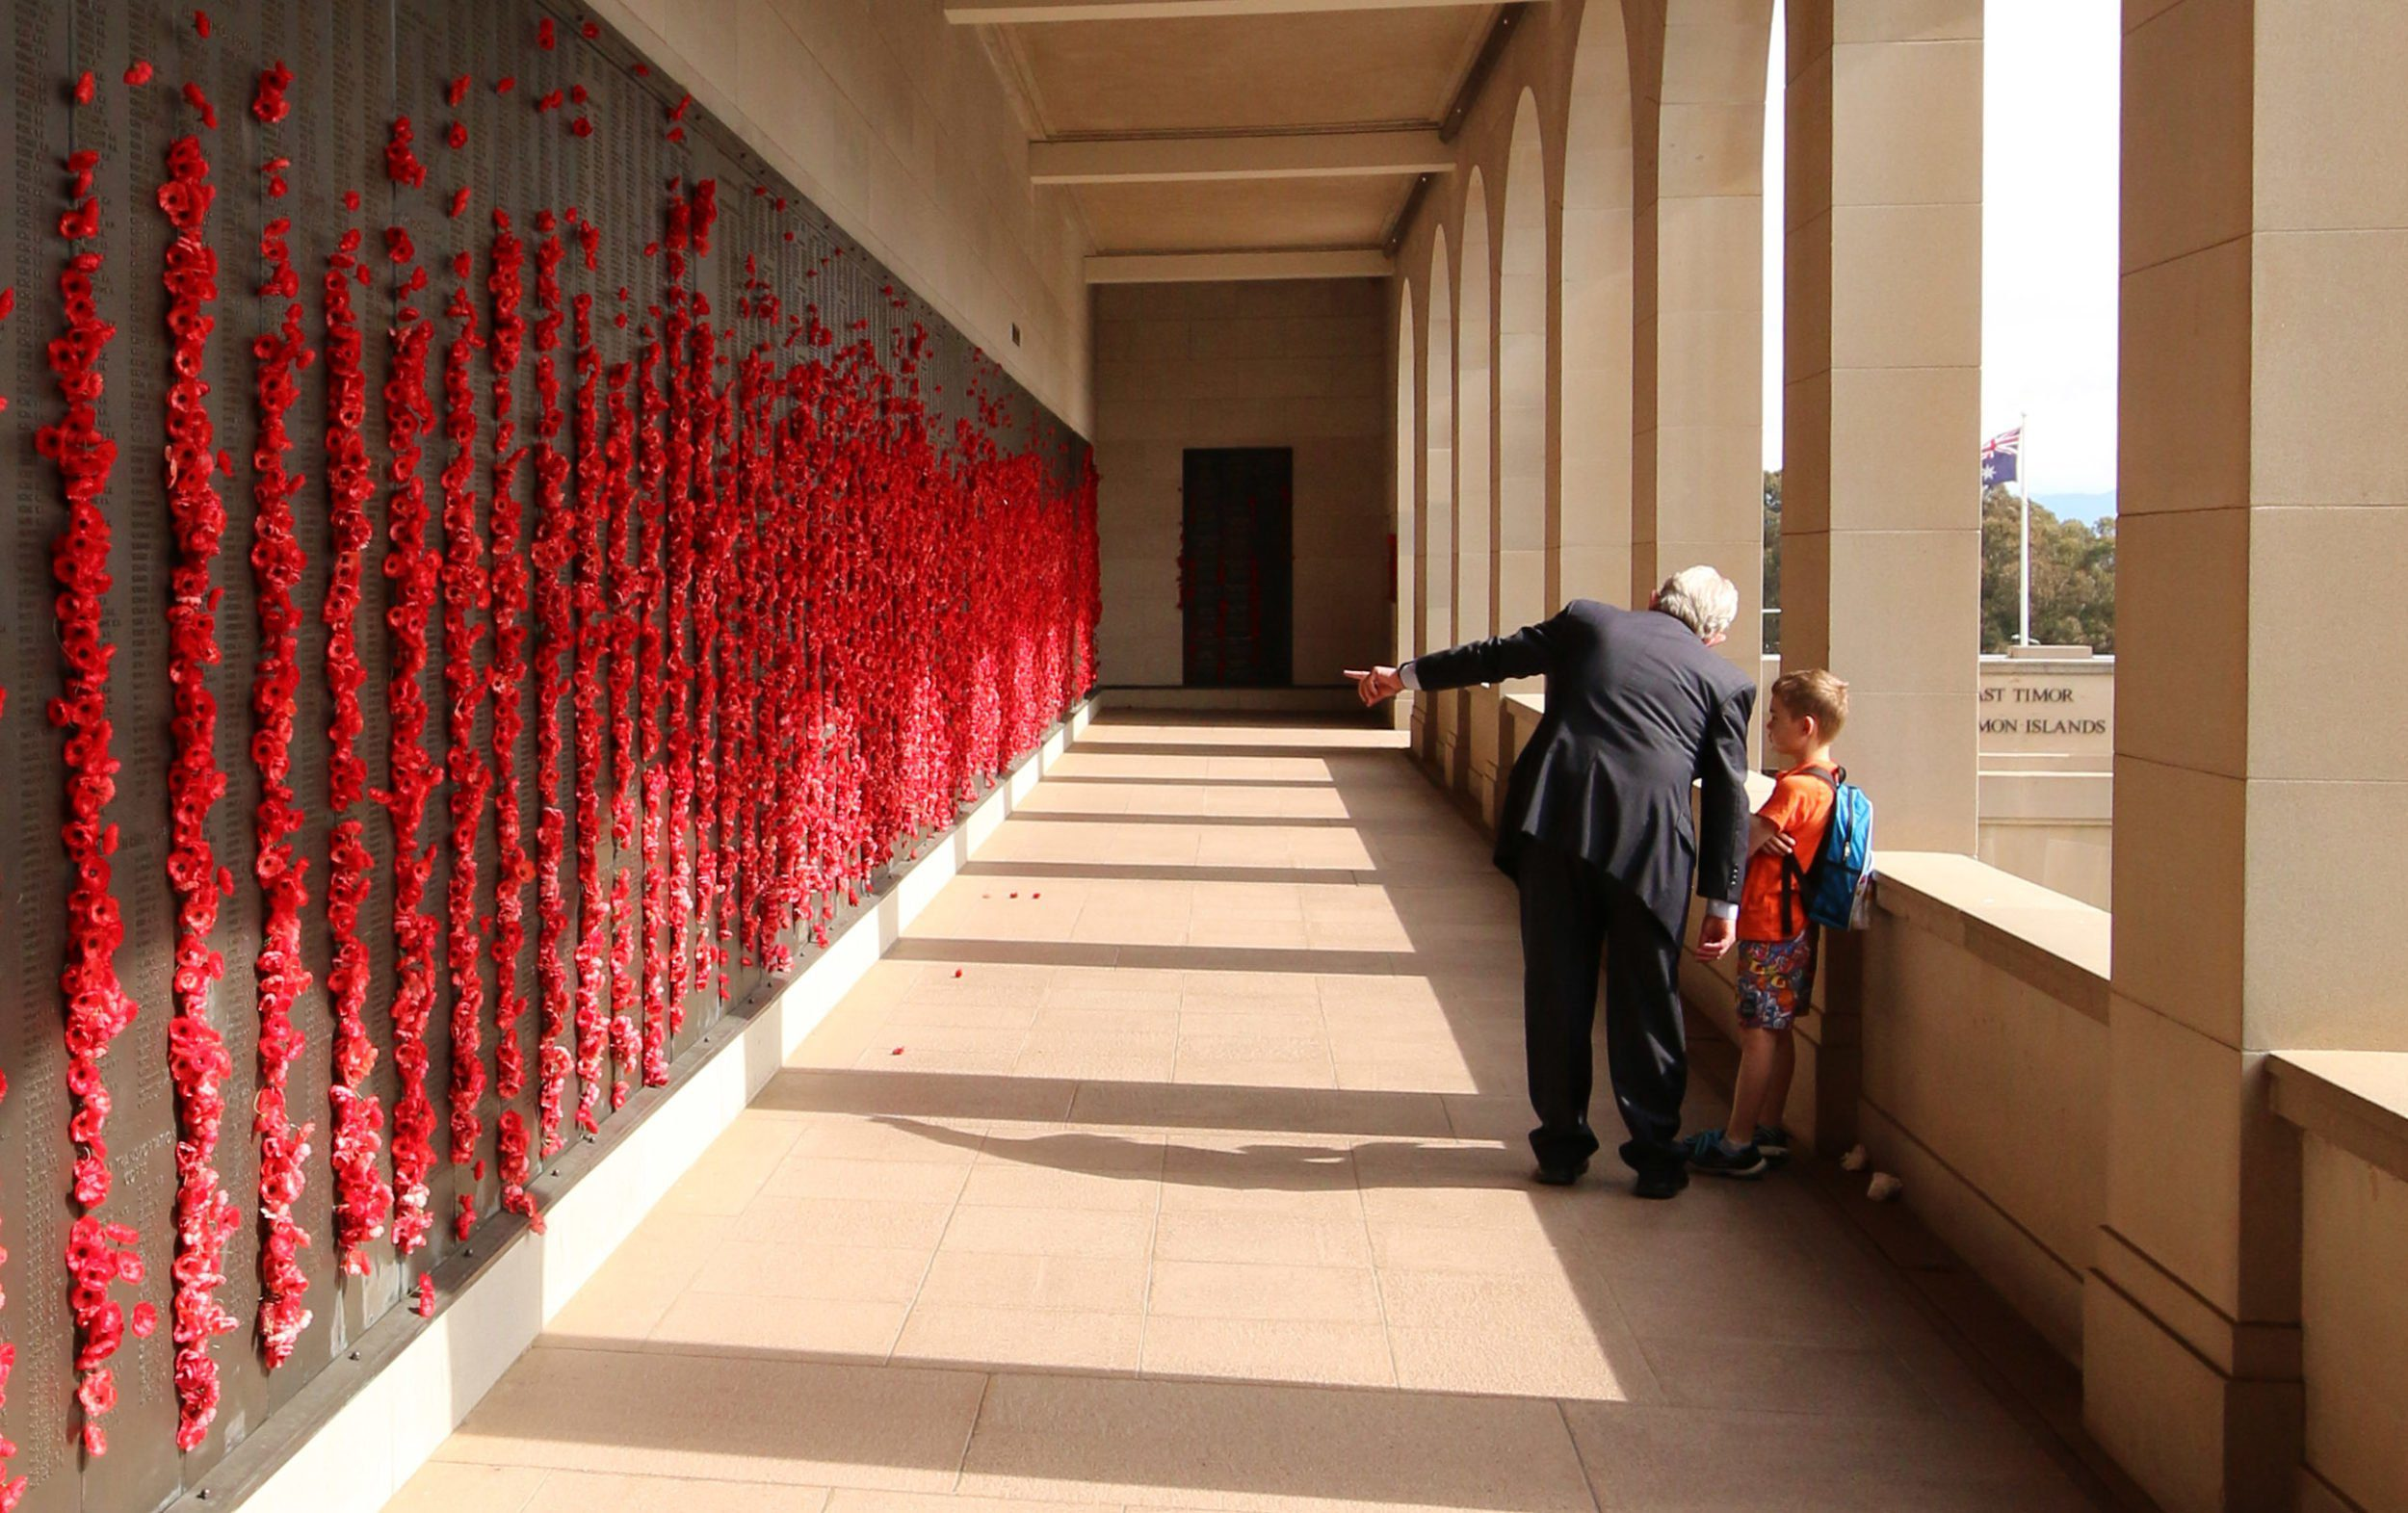 Our Guide explaining about the Roll of Honour to Our Son